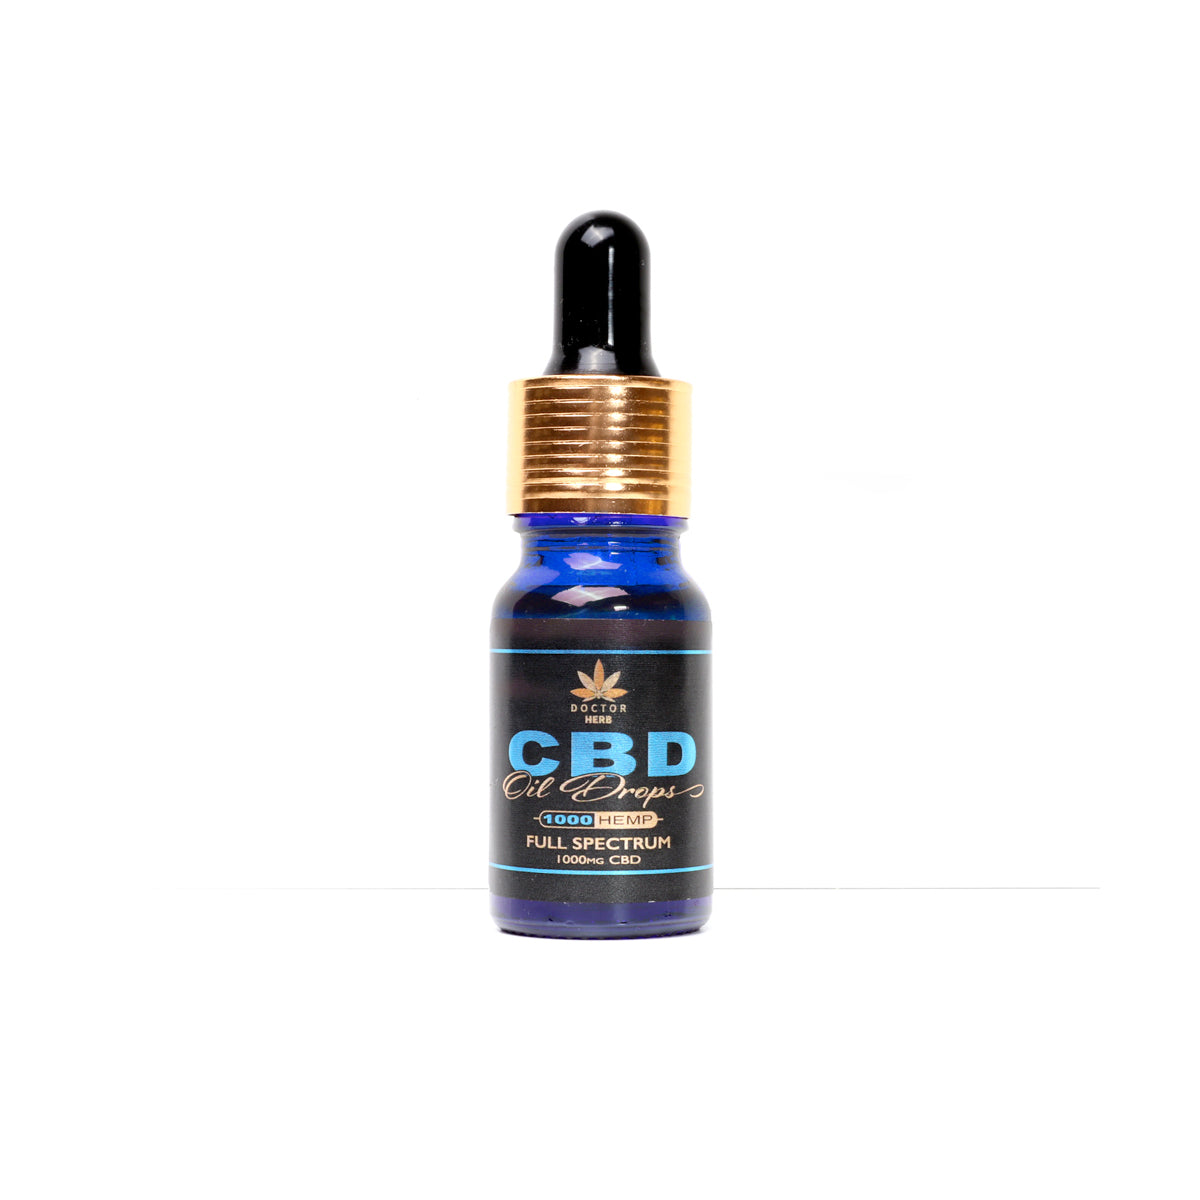 Doctor Herb 10% Full Spectrum CBD Oil Drops 1000mg